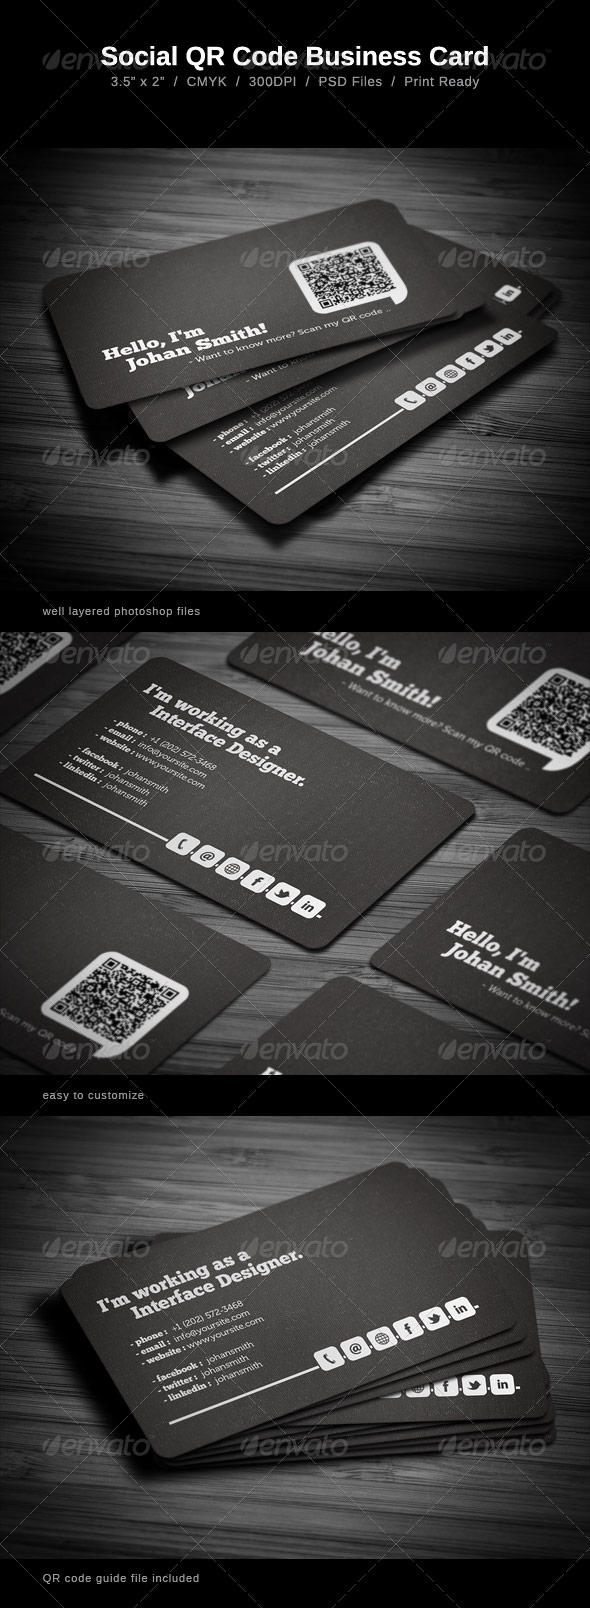 Noteworthy Back Of Business Cards Ideas - Construction business card templates download free